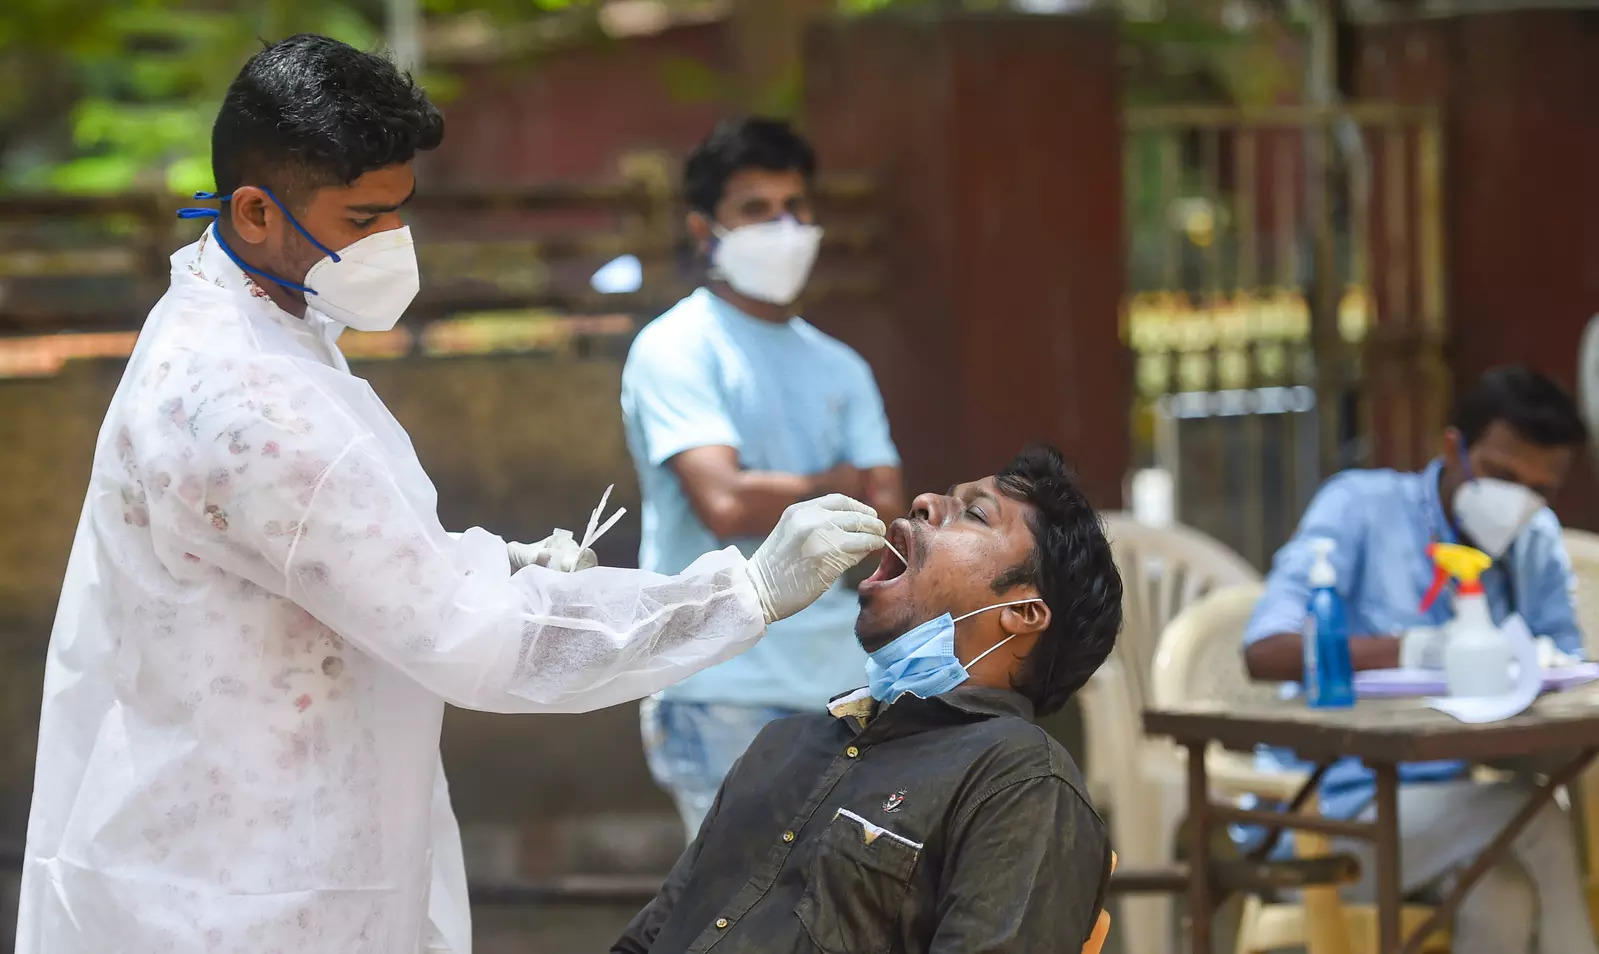 21 highly infectious Delta-plus cases found in Maharashtra, 2 in Mumbai